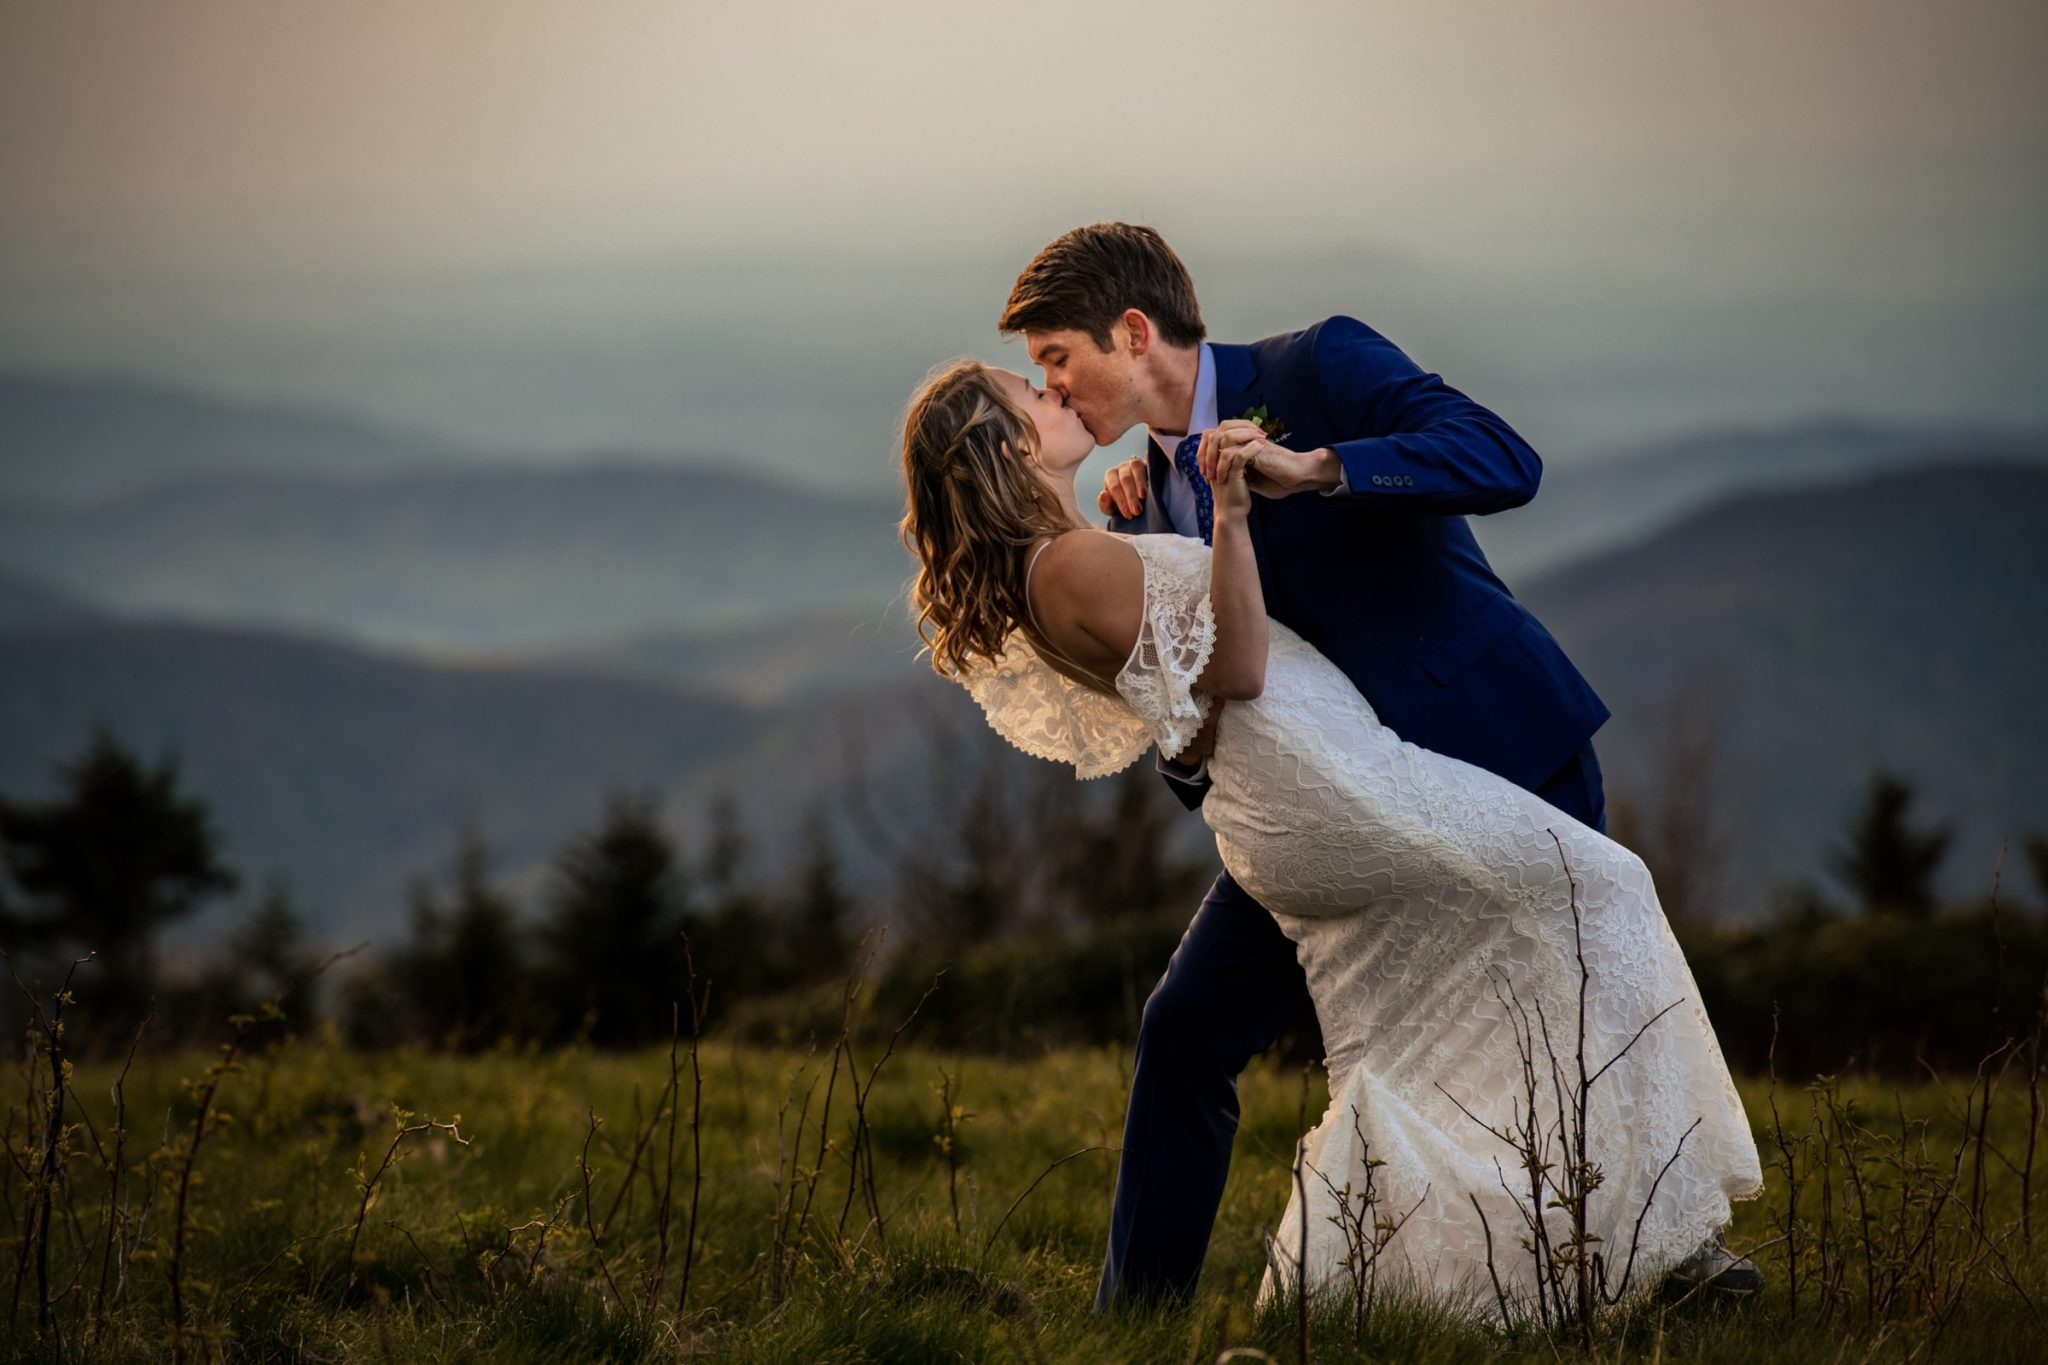 Husband dipping his wife during their elopement ceremony in Asheville